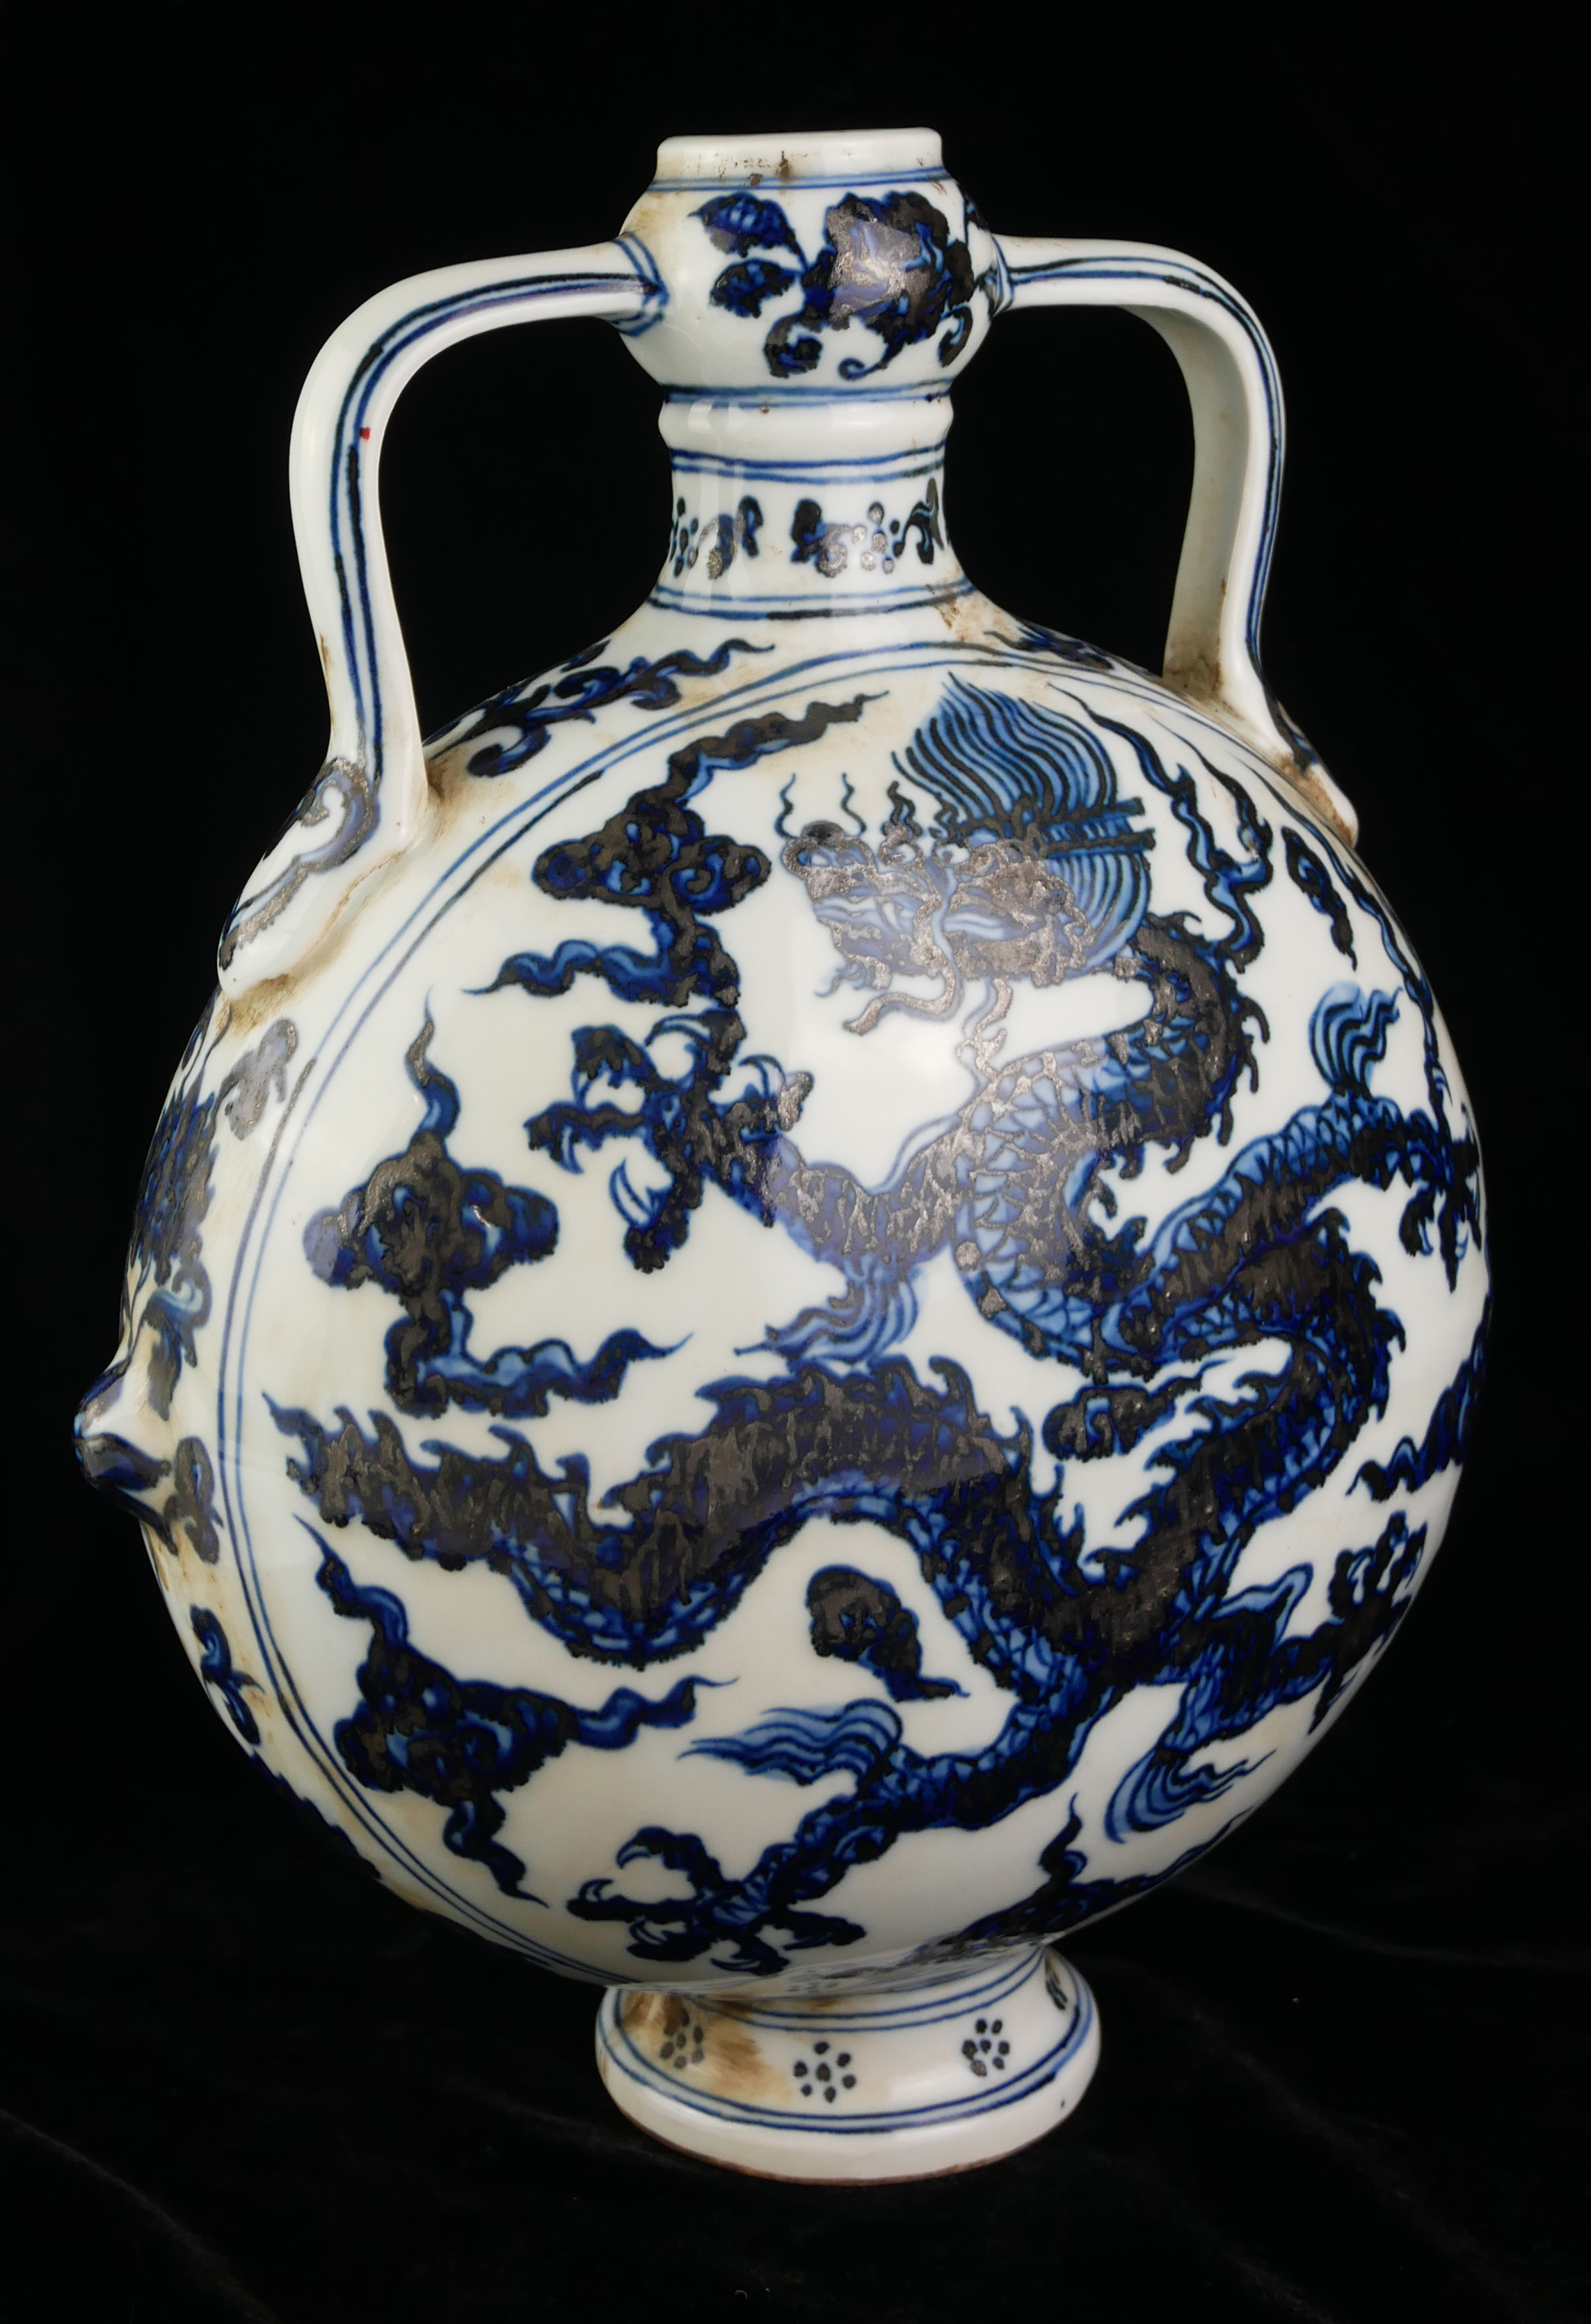 A 20TH CENTURY CHINESE BLUE AND WHITE PORCELAIN MOON FLASK Both sides decorated with Imperial dragon - Image 3 of 4